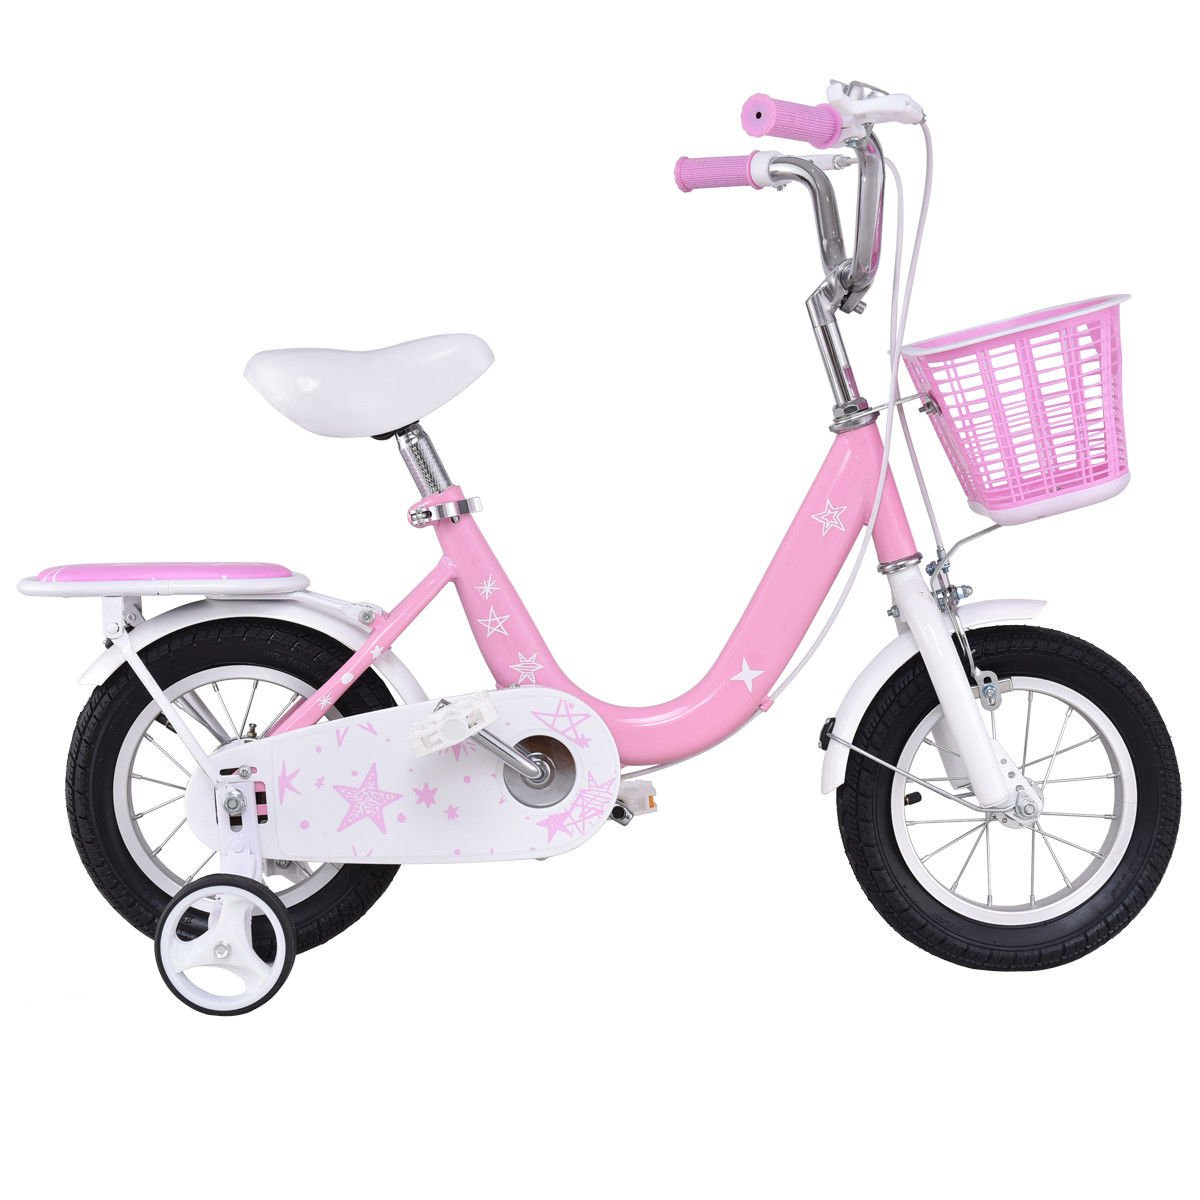 Goplus Kids Bike Boy's and Girl's Bicycle with Training Wheels and Basket Perfect Gift for Kids, 12'' (Pink)